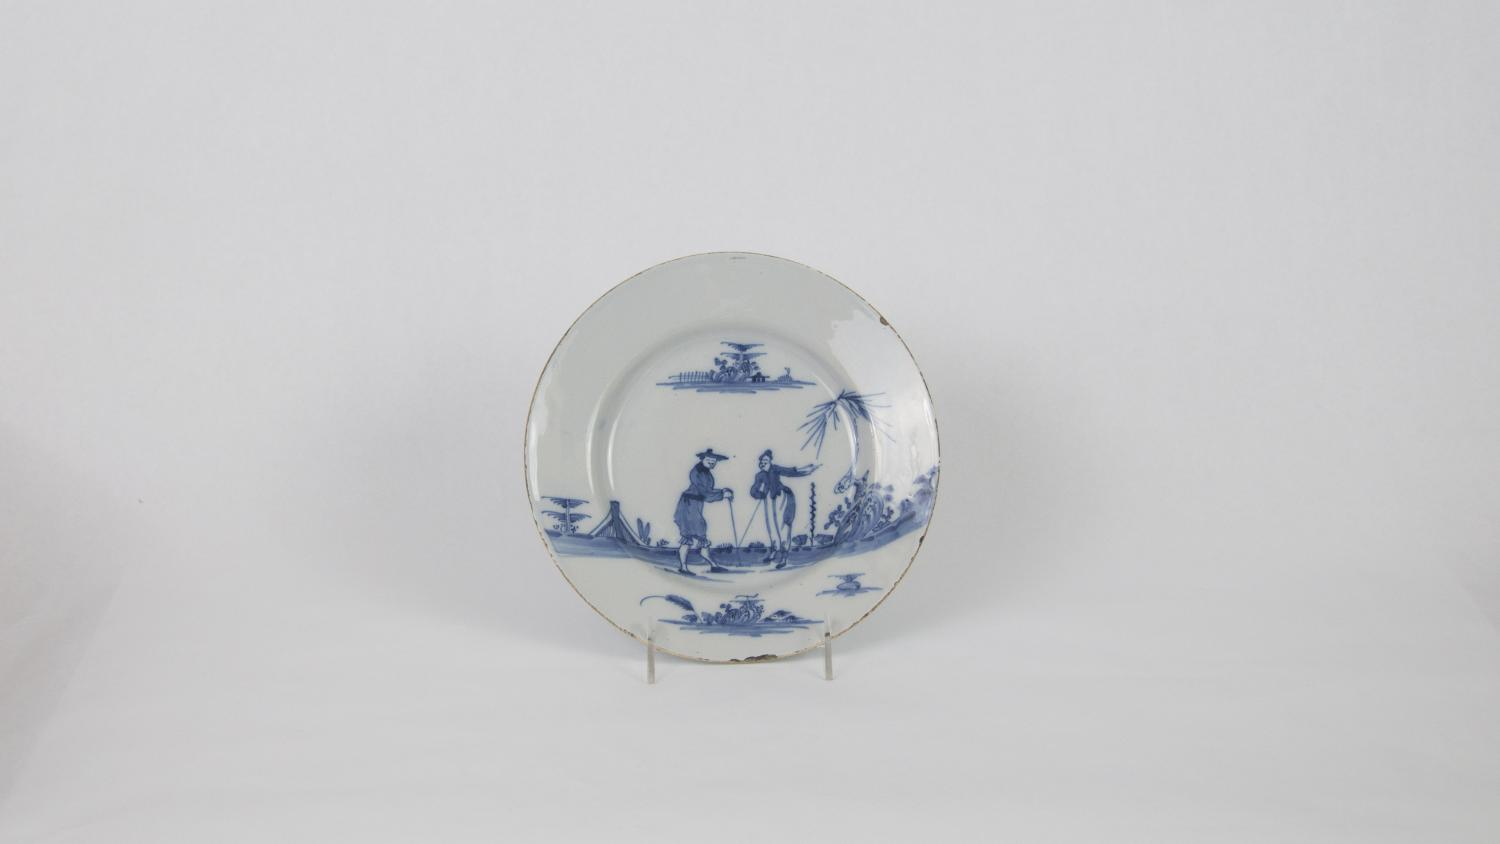 Delft plate, English, 1750–1775. Lead-glazed earthenware. Museum purchase through the Harlan E. Moore Charitable Trust fund 1986-9-1